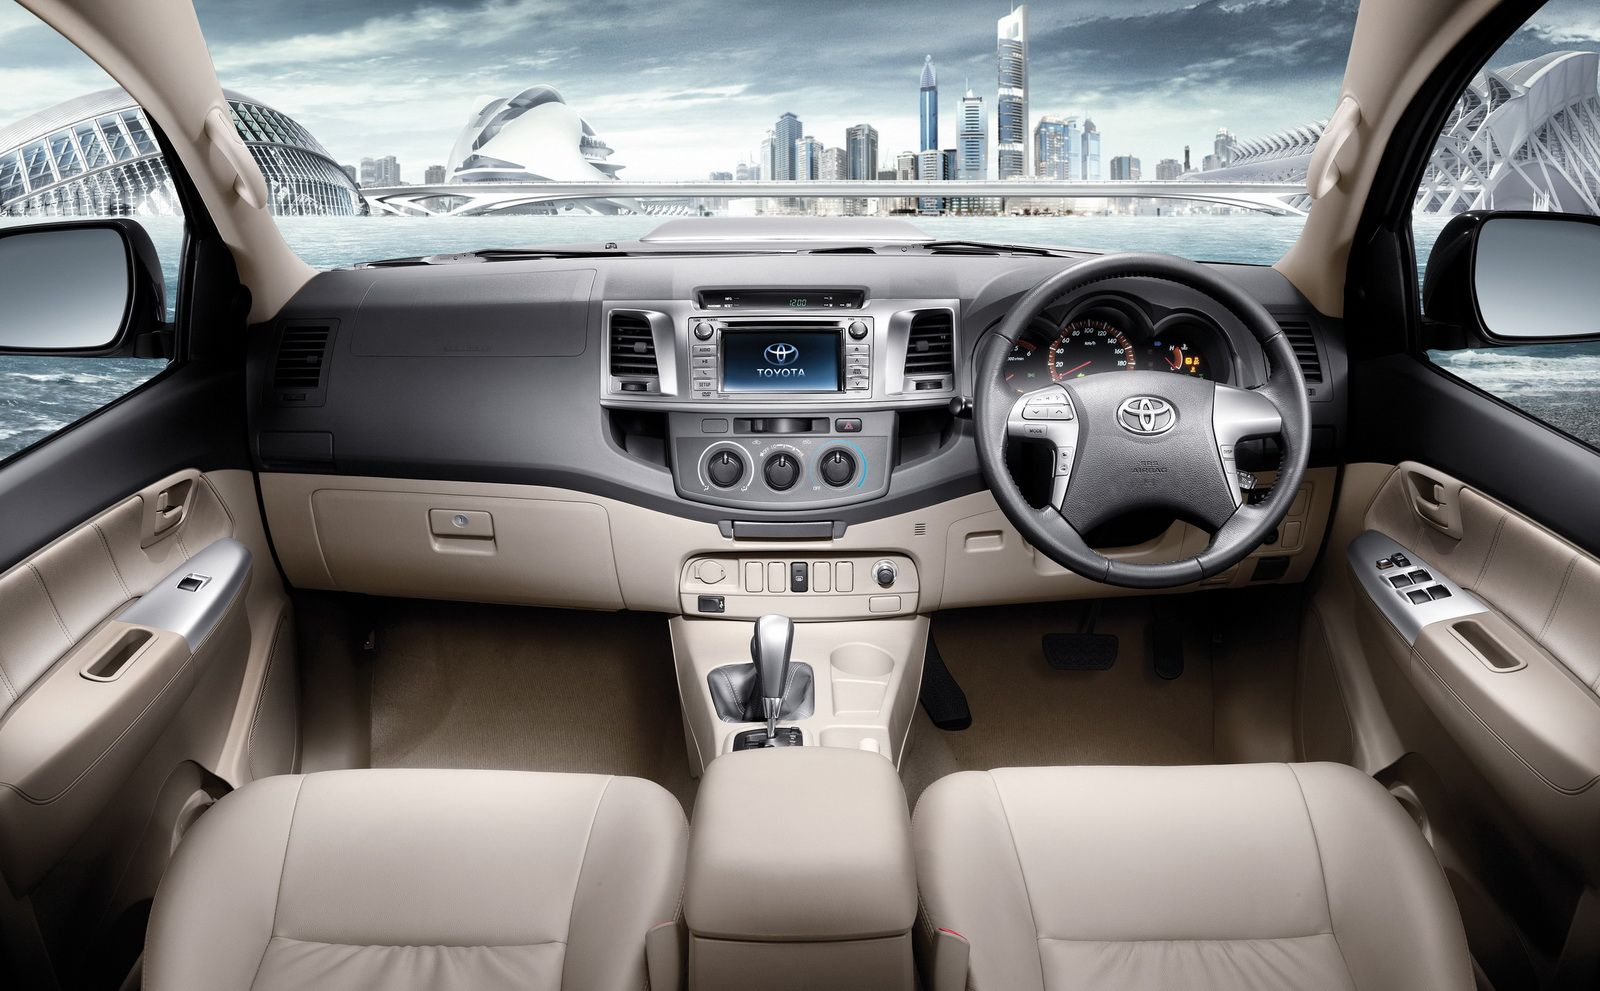 new car launches south africa 2014Toyota Hilux 2014  Interior  New car  Pinterest  Toyota hilux